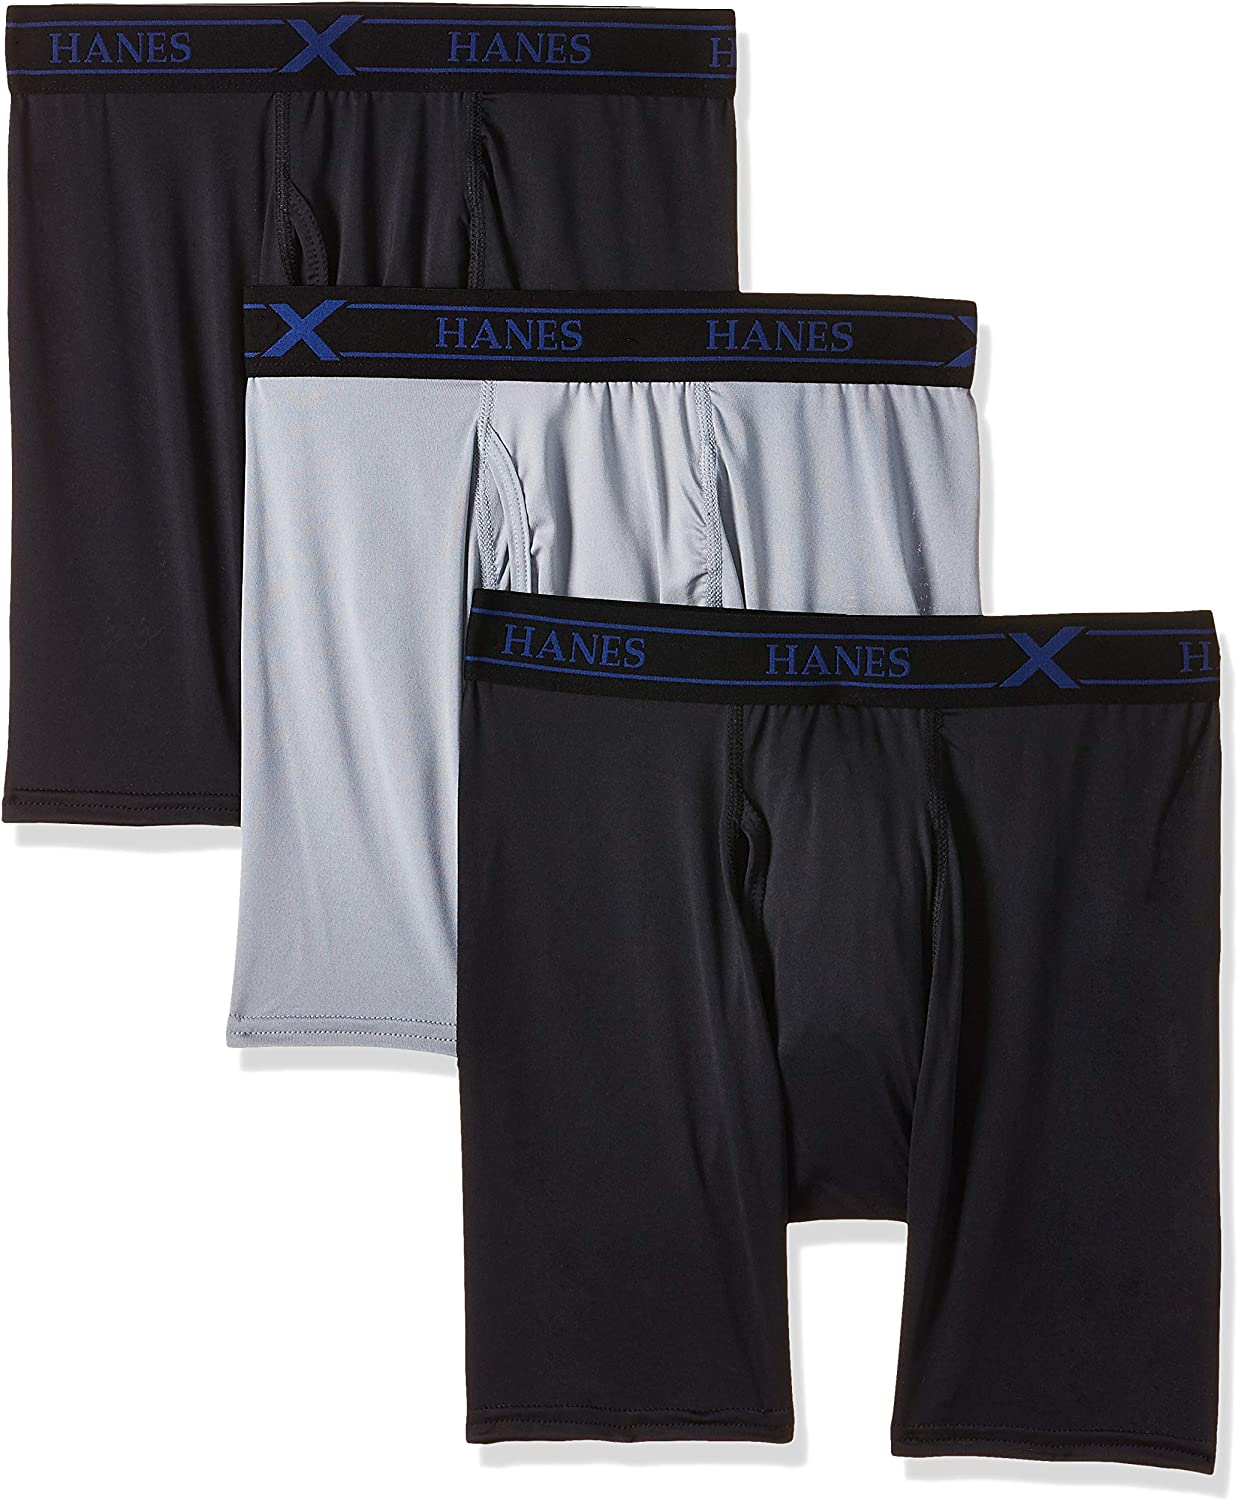 Hanes Ultimate Men's 3-Pack X-Temp Stretch Bri Boxer Performance お求めやすく価格改定 未使用品